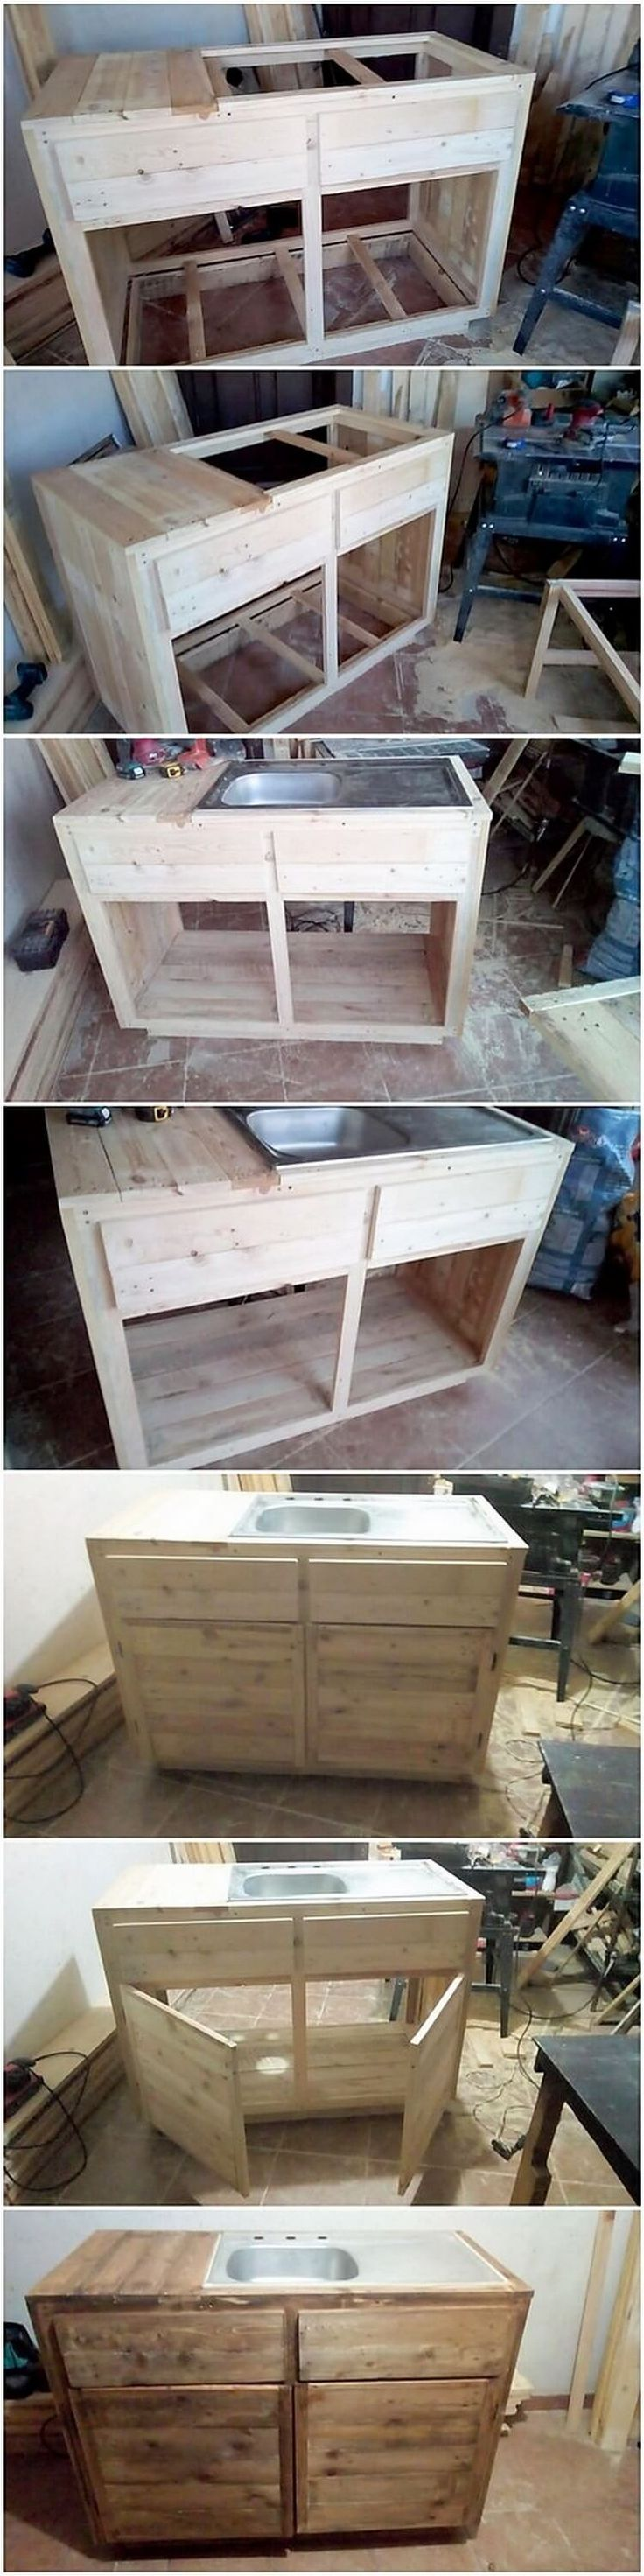 Giving your kitchen with the appearance view of the different styles of the sinks will surely make it look stylishly happening for others. This wood pallet sink piece of the design has been beautifully created with impressive look of being a bicycle. It look outstanding.